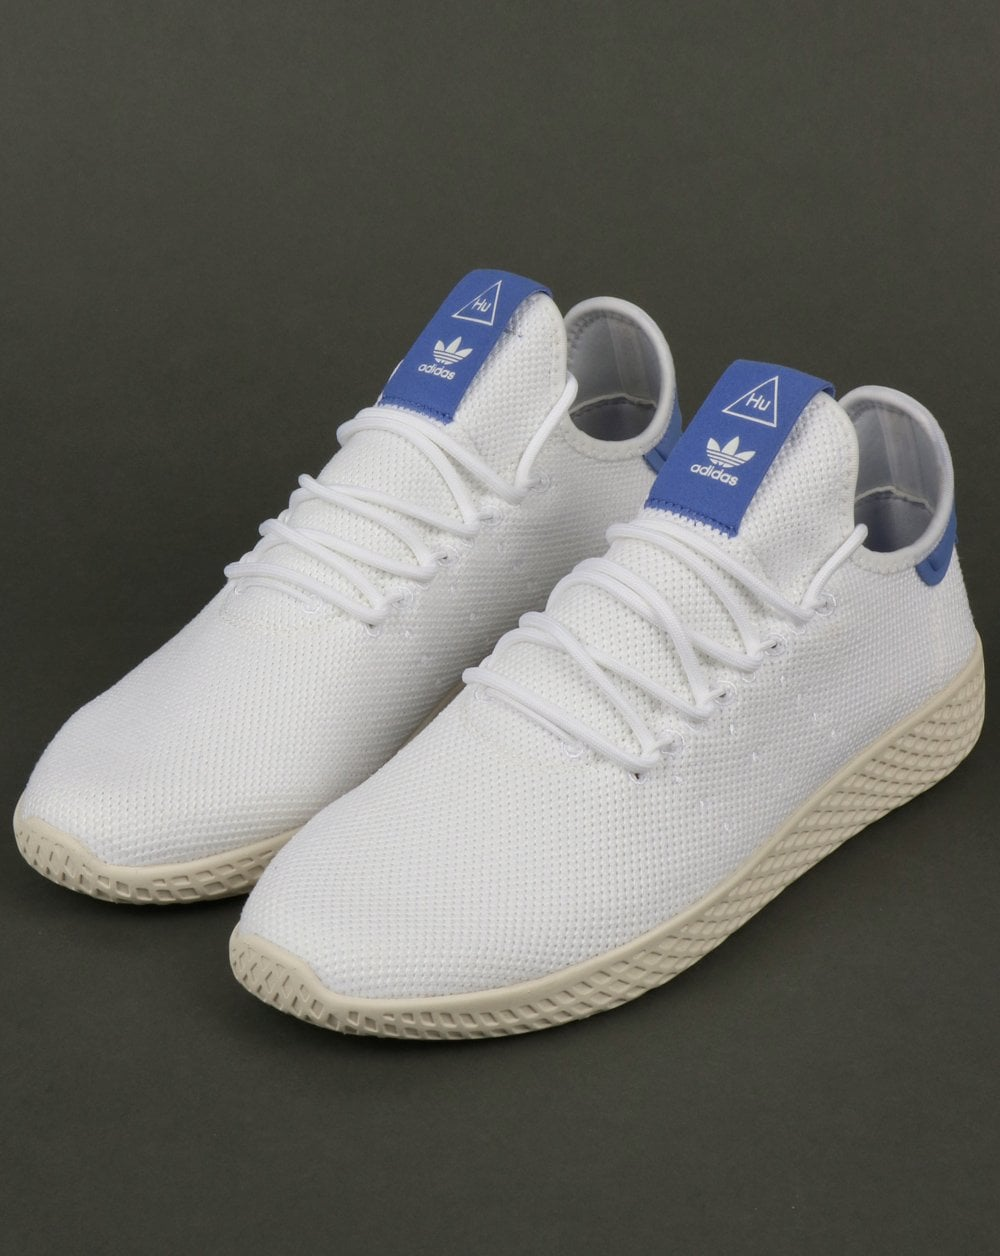 1497ad5d4470c adidas Trainers Adidas PW Tennis HU Trainers White Blue